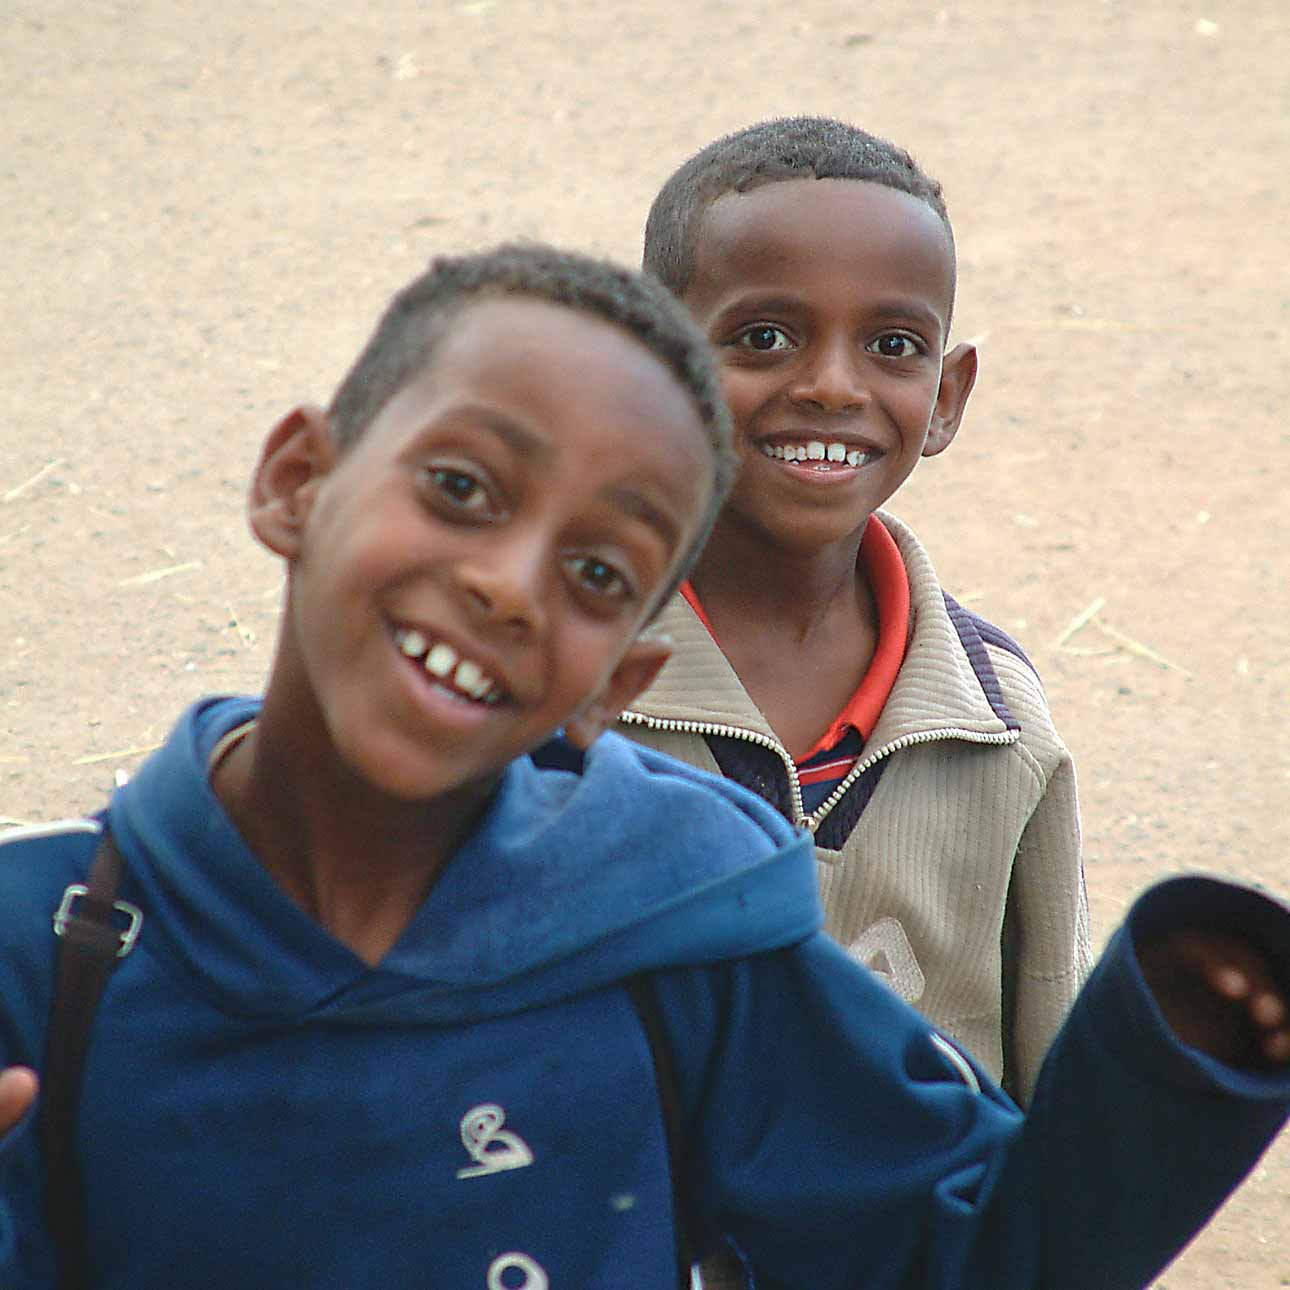 Eritrea has arrested more than 200 Christians this year, leaving many kids orphaned.